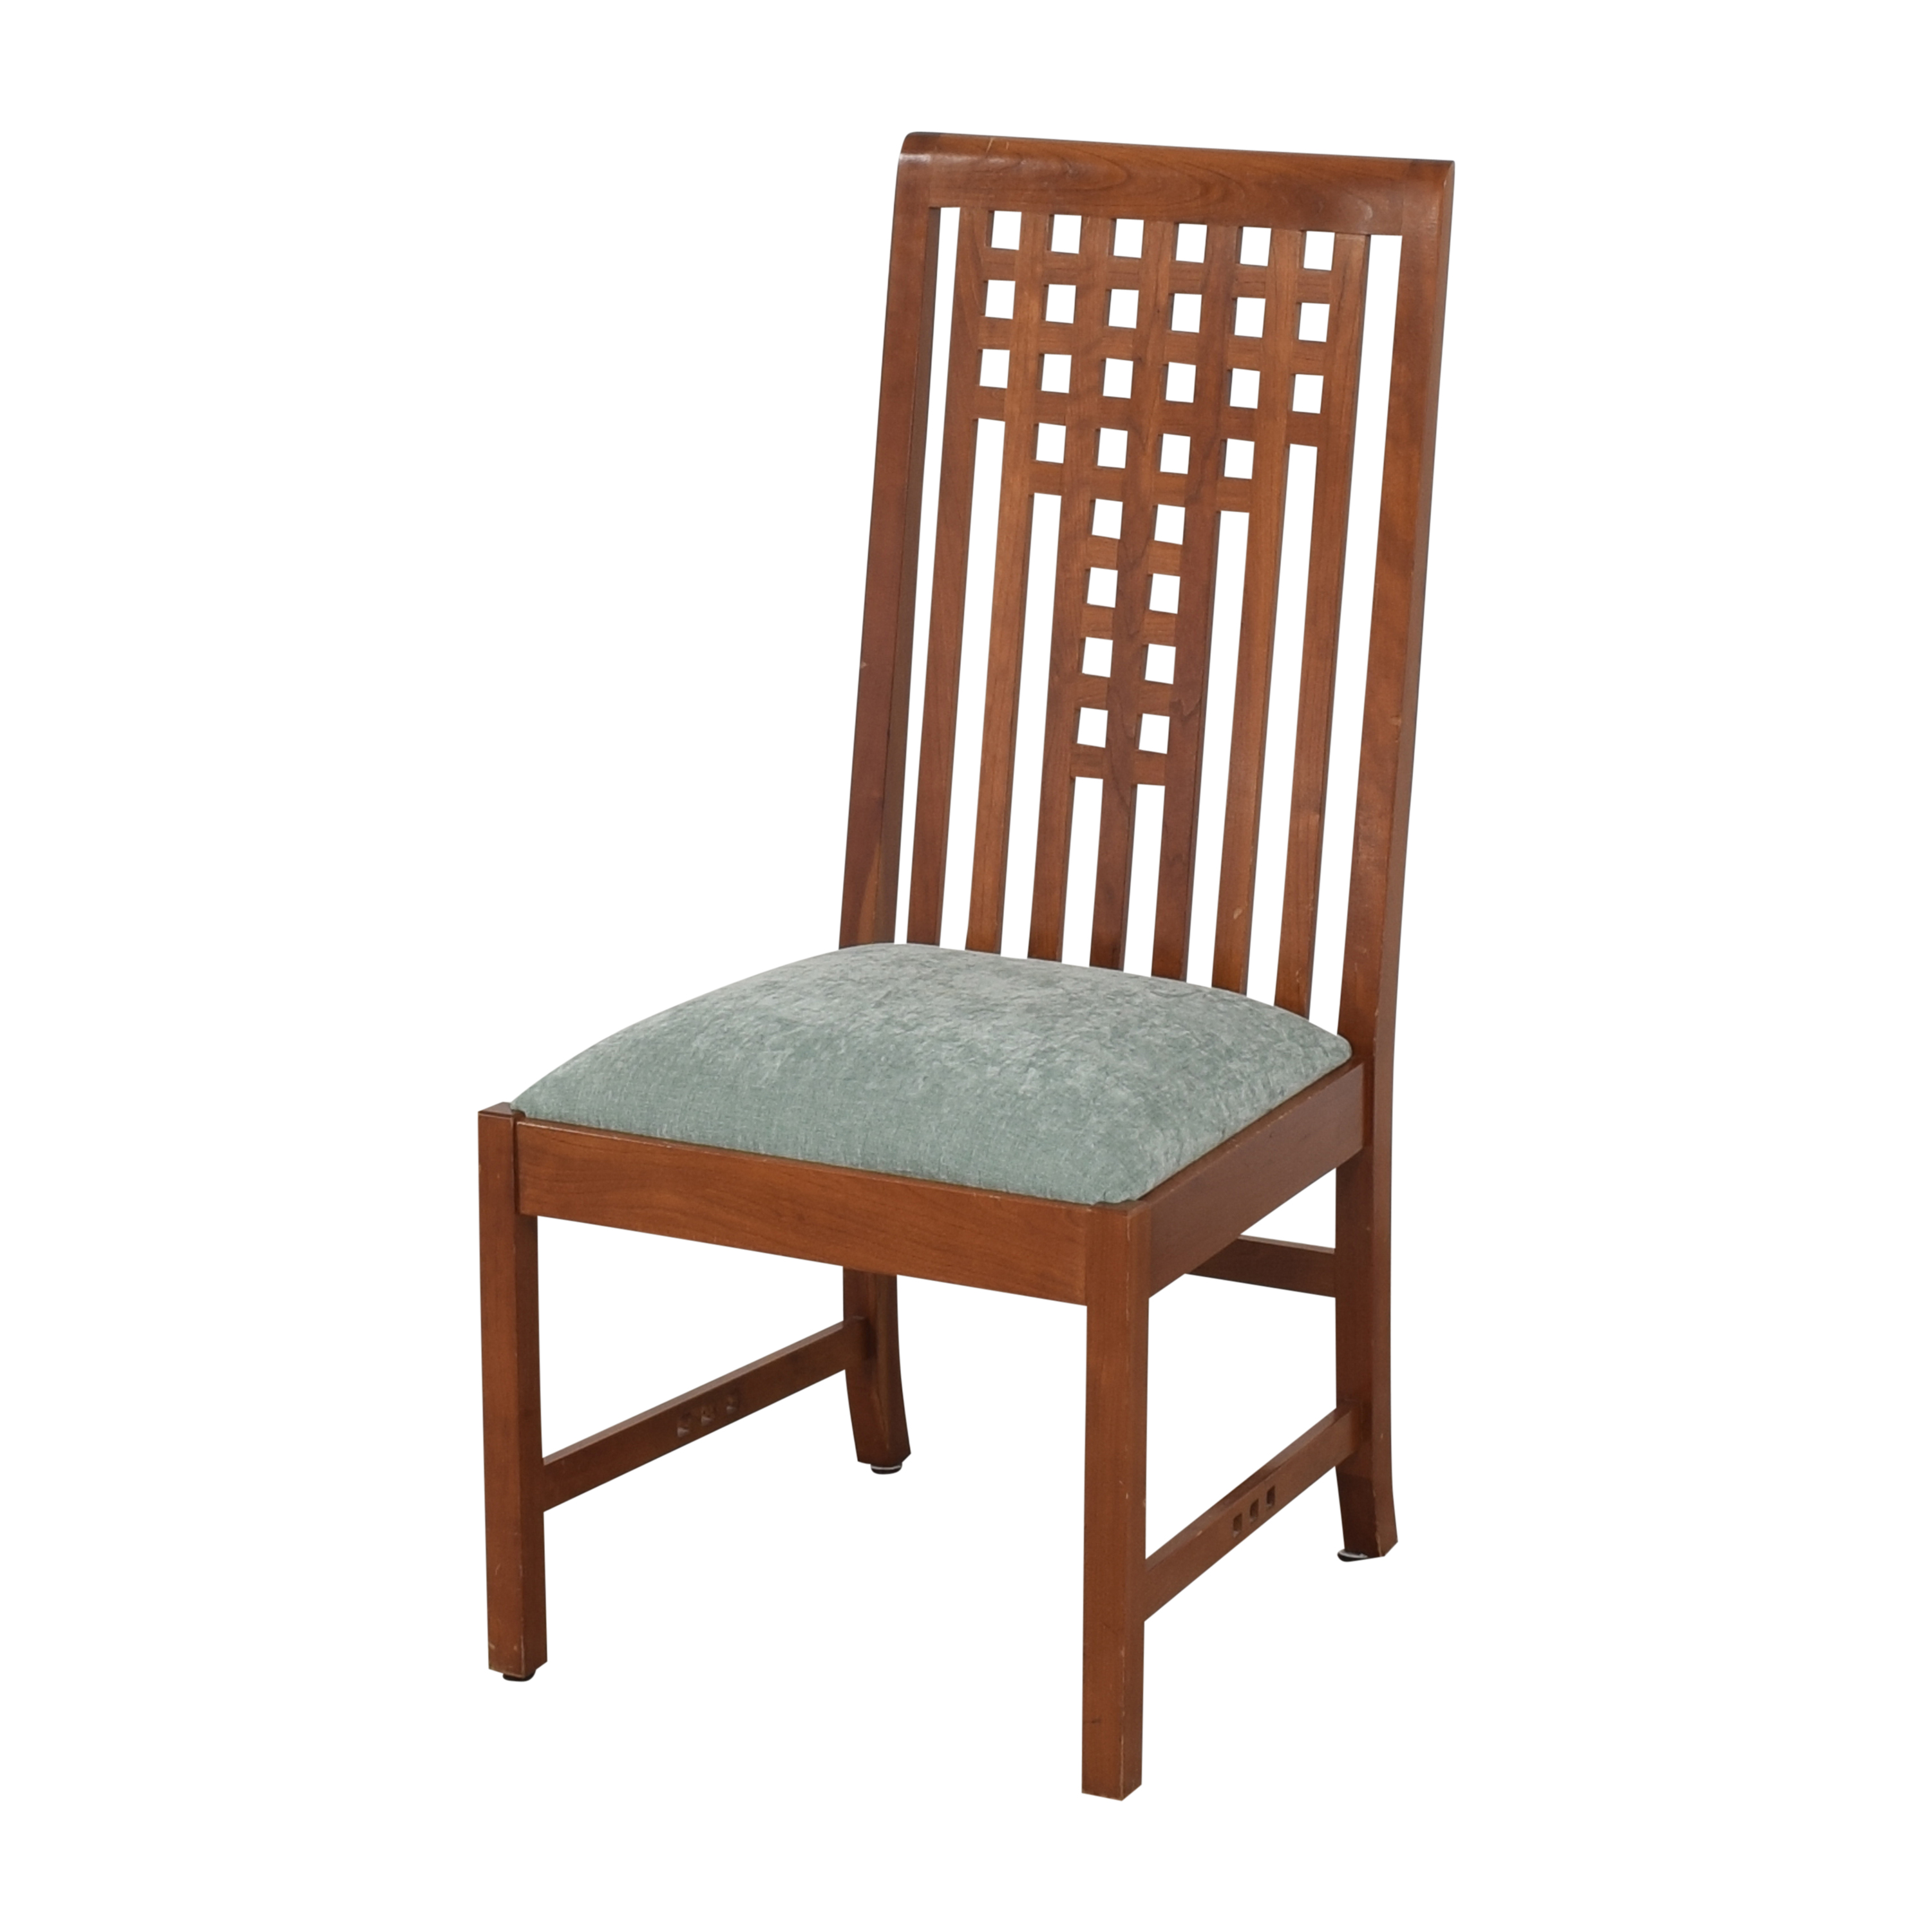 Stickley Furniture Stickley Furniture 21st Century Lattice Dining Side Chairs ct